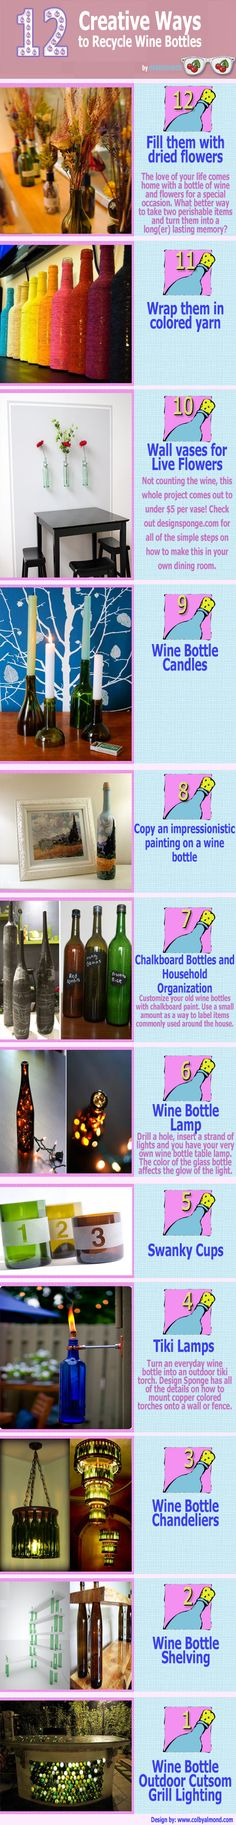 12 creative ways to reuse empty wine bottles